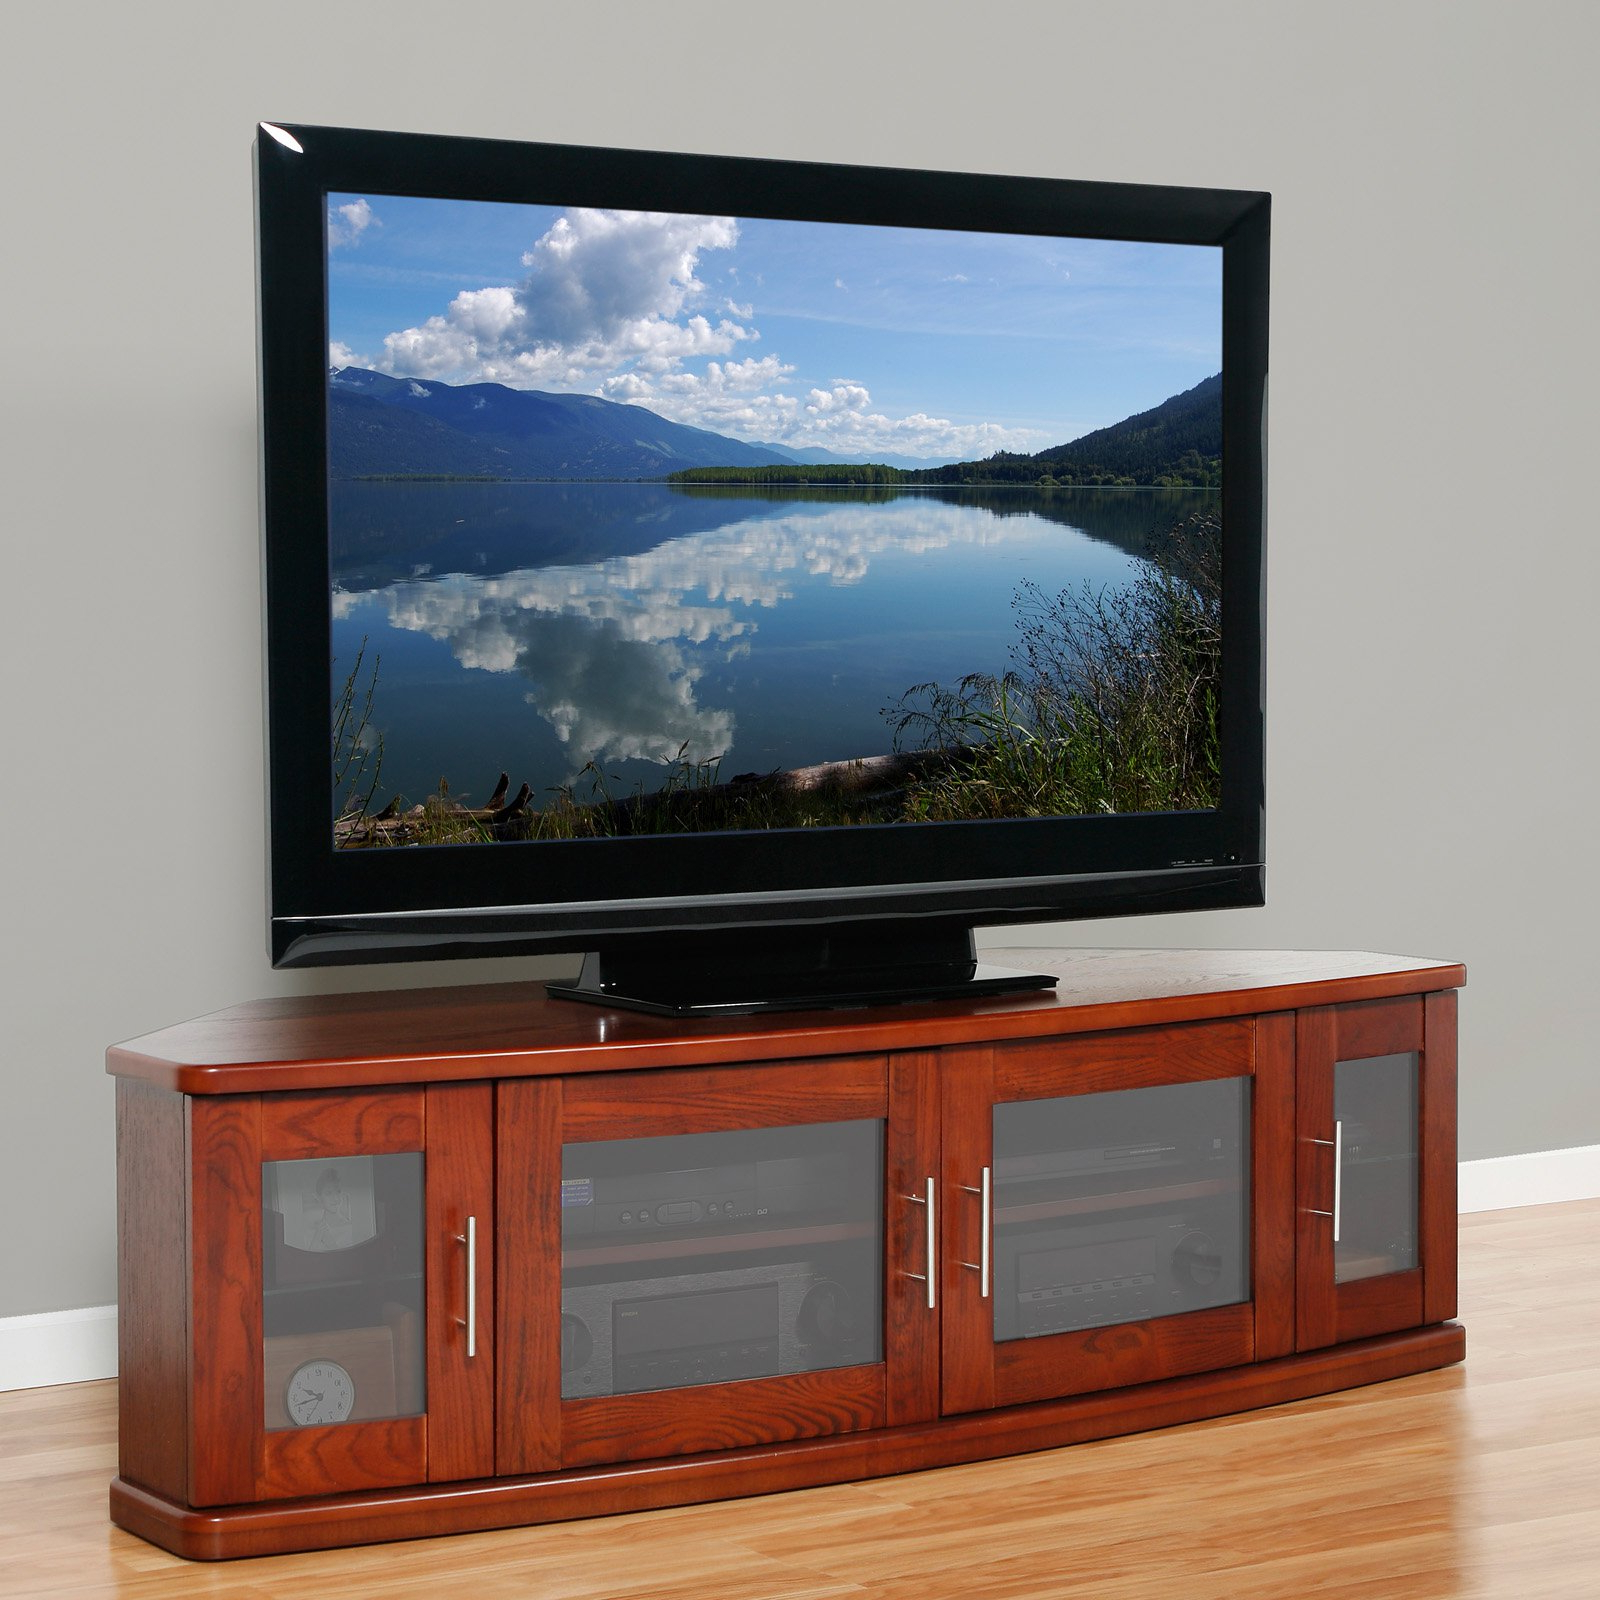 Trendy Plateau Newport 62 Inch Corner Tv Stand In Walnut Tv Stands On Popscreen Inside Cherry Wood Tv Stands (View 15 of 20)